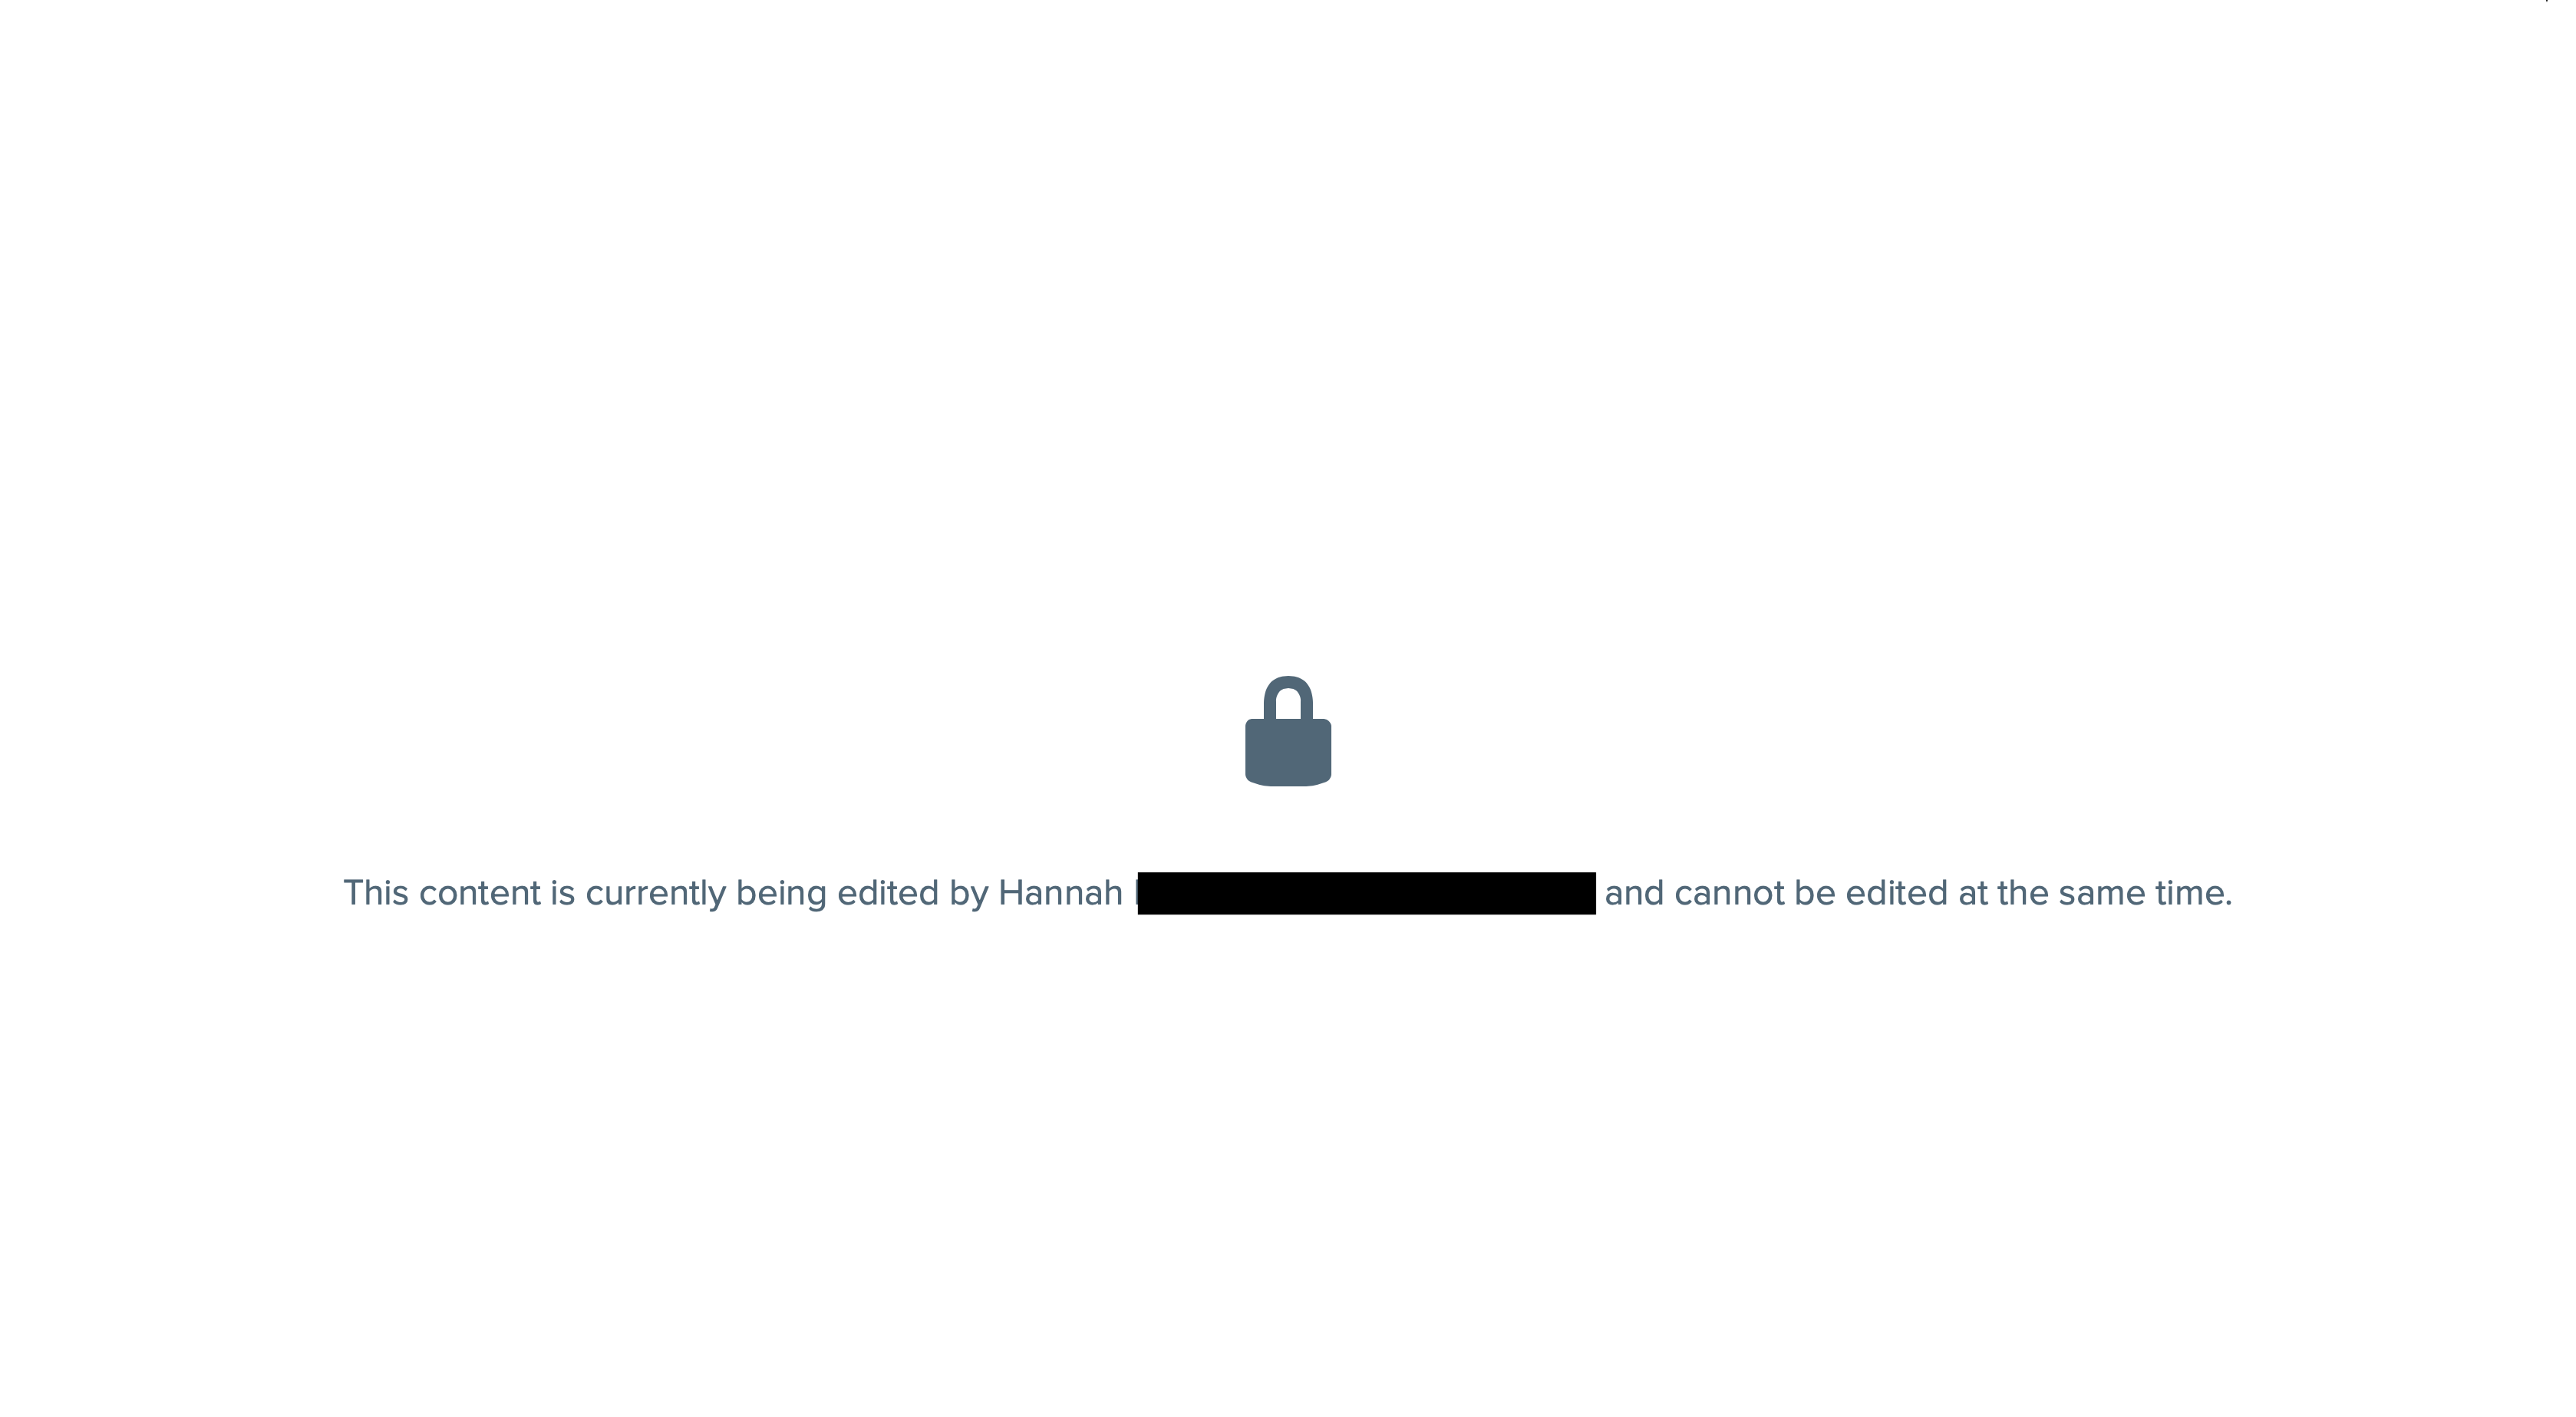 Message displayed when trying to access the editor if it is locked